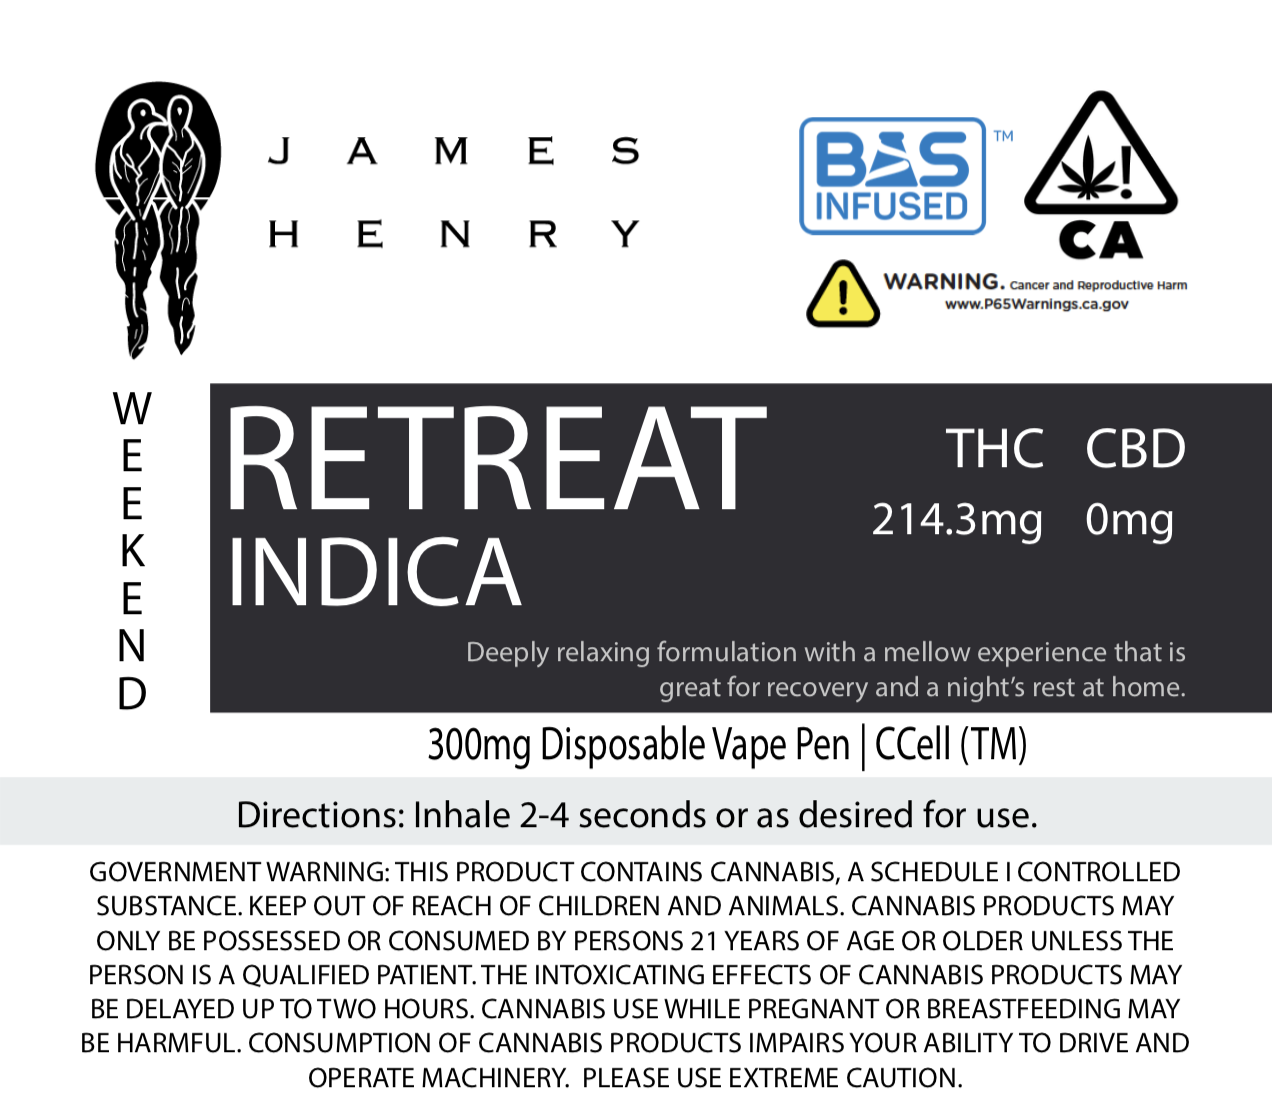 Weekend: Retreat Indica - Experienced consumers and patients find effective pain relief.Full THC formulation offers a deep relaxing experience that is great for recovery and rejuvenation at home and on weekends.Patients and Customers Have Noted Relief from the Following:-Anger Management-Loss of Appetite (this product induces appetite stimulation, which is great for cancer and auto-immune patients)-Insomnia-Muscular Pain/Soreness-Musical Appreciation-Trouble Getting to Sleep